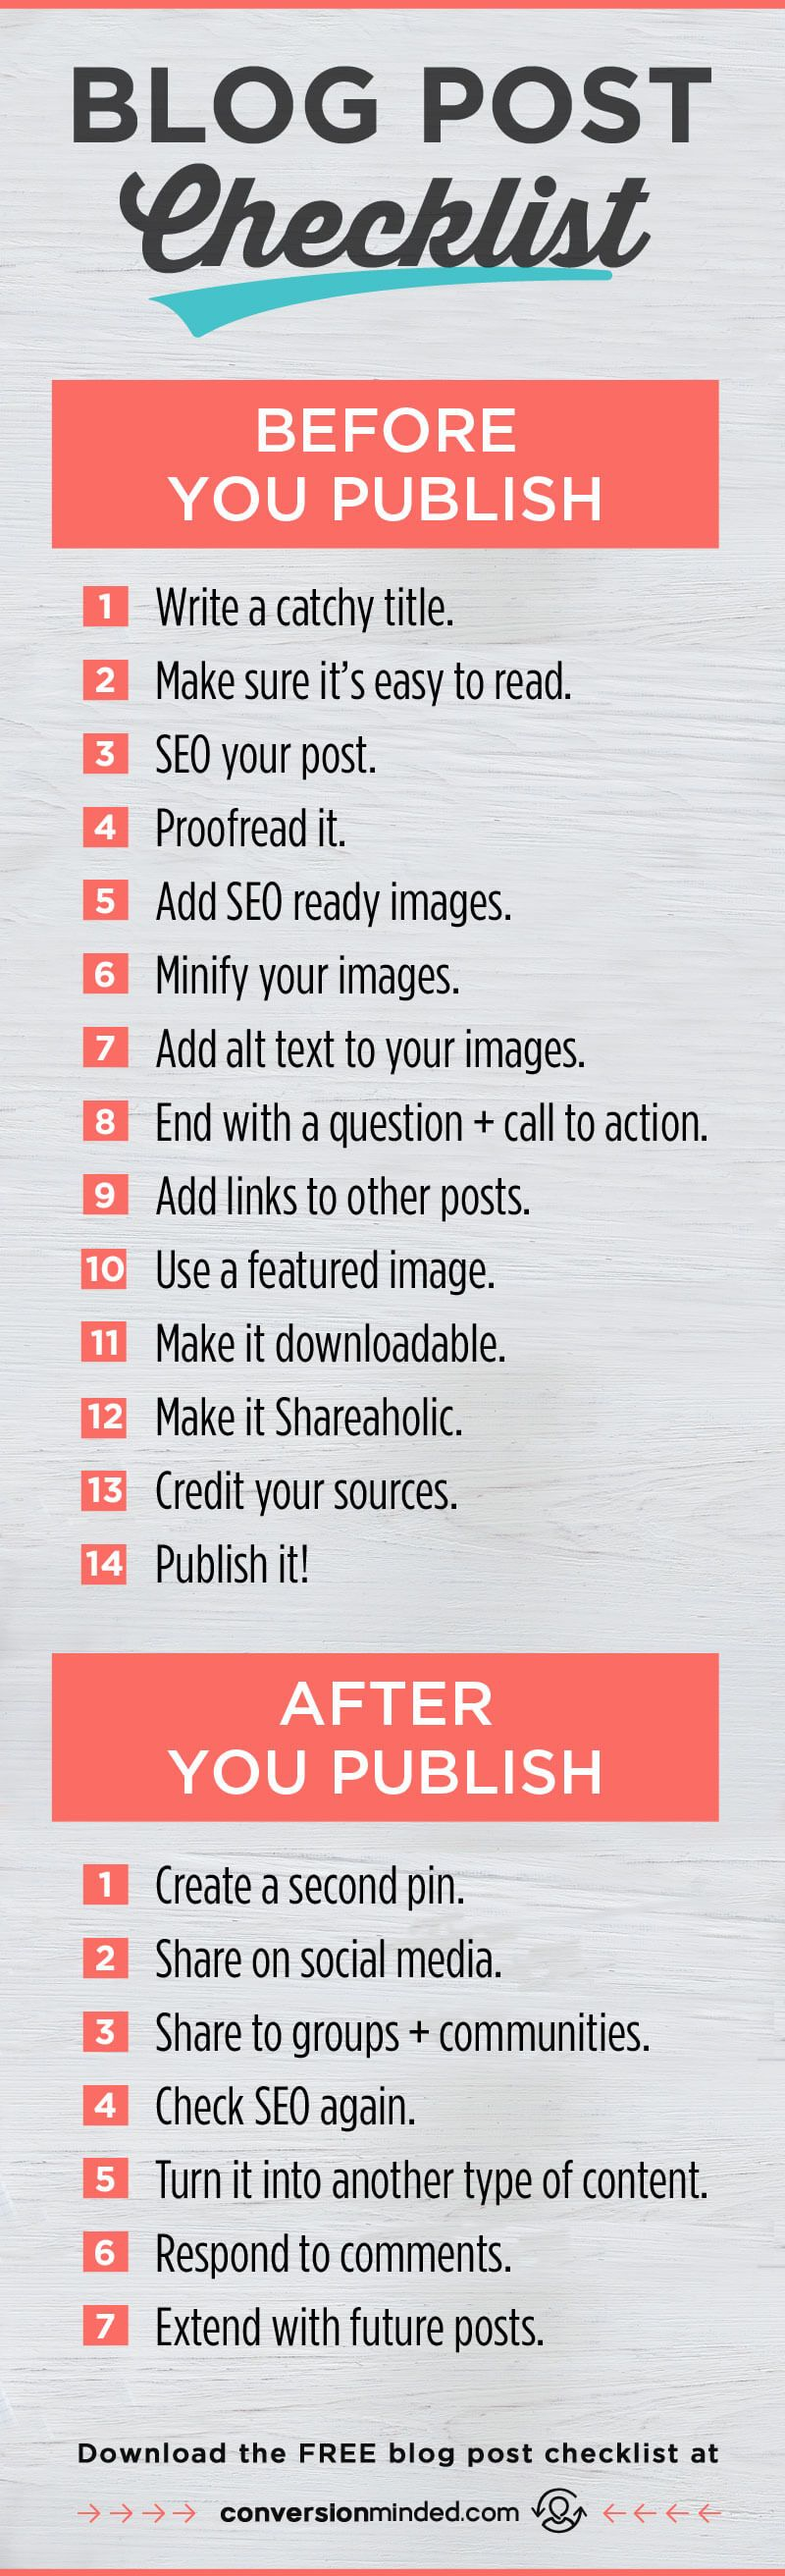 7 Things Every Blogger Should Do After You Hit Publish